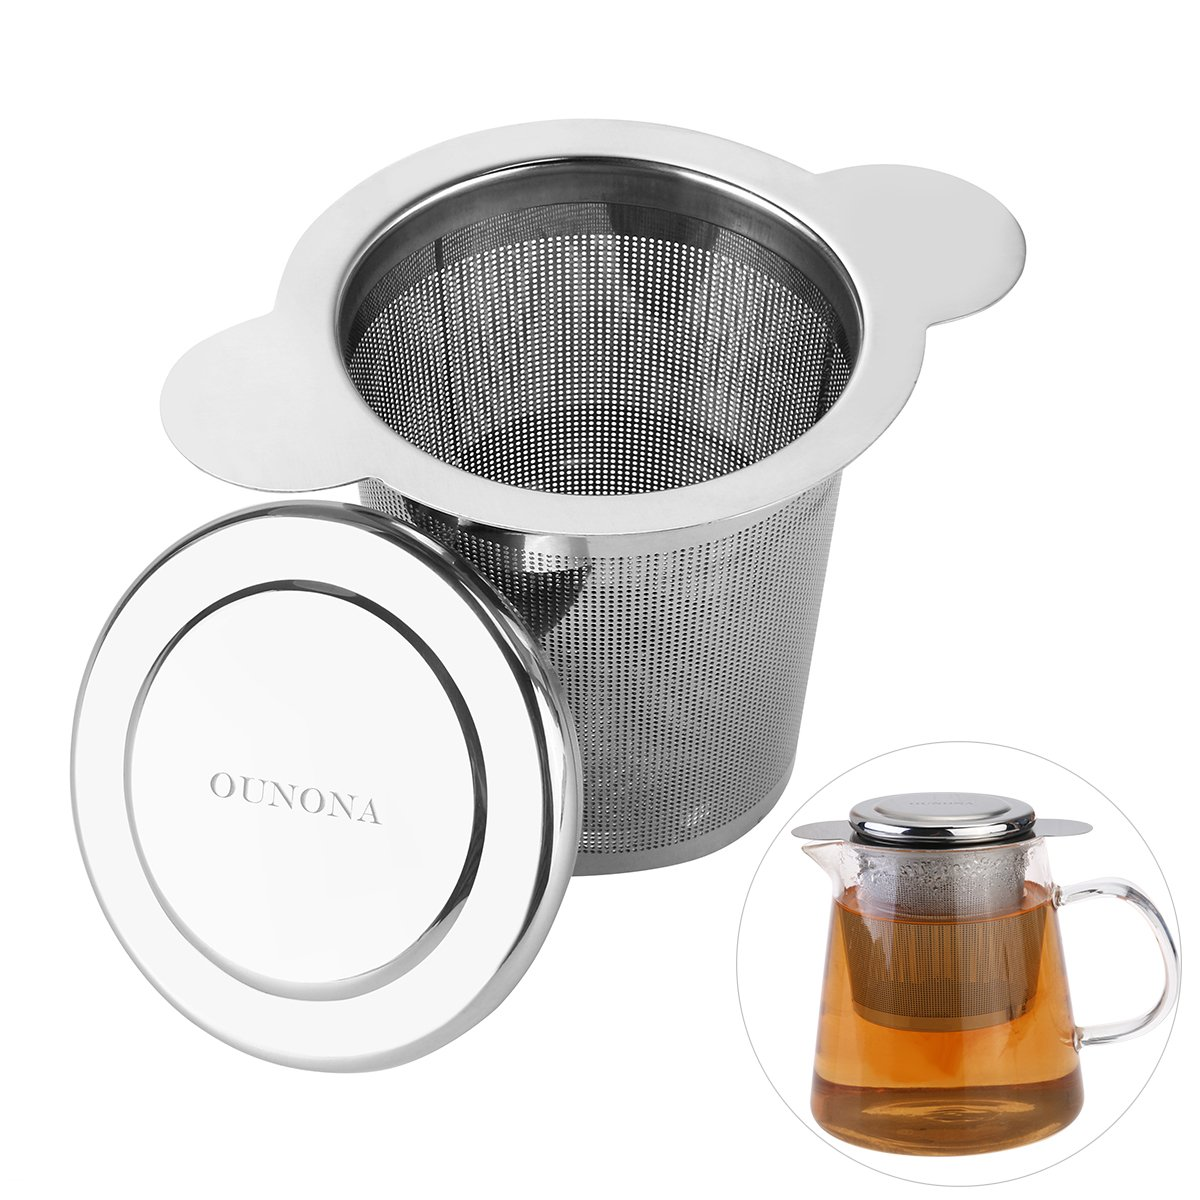 OUNONA Tea Strainer Tea Infuser 304 Stainless Steel with Lid for Loose Leaf Grain Tea Cups, Mugs, and Pots FEMIHGFJGUGD177